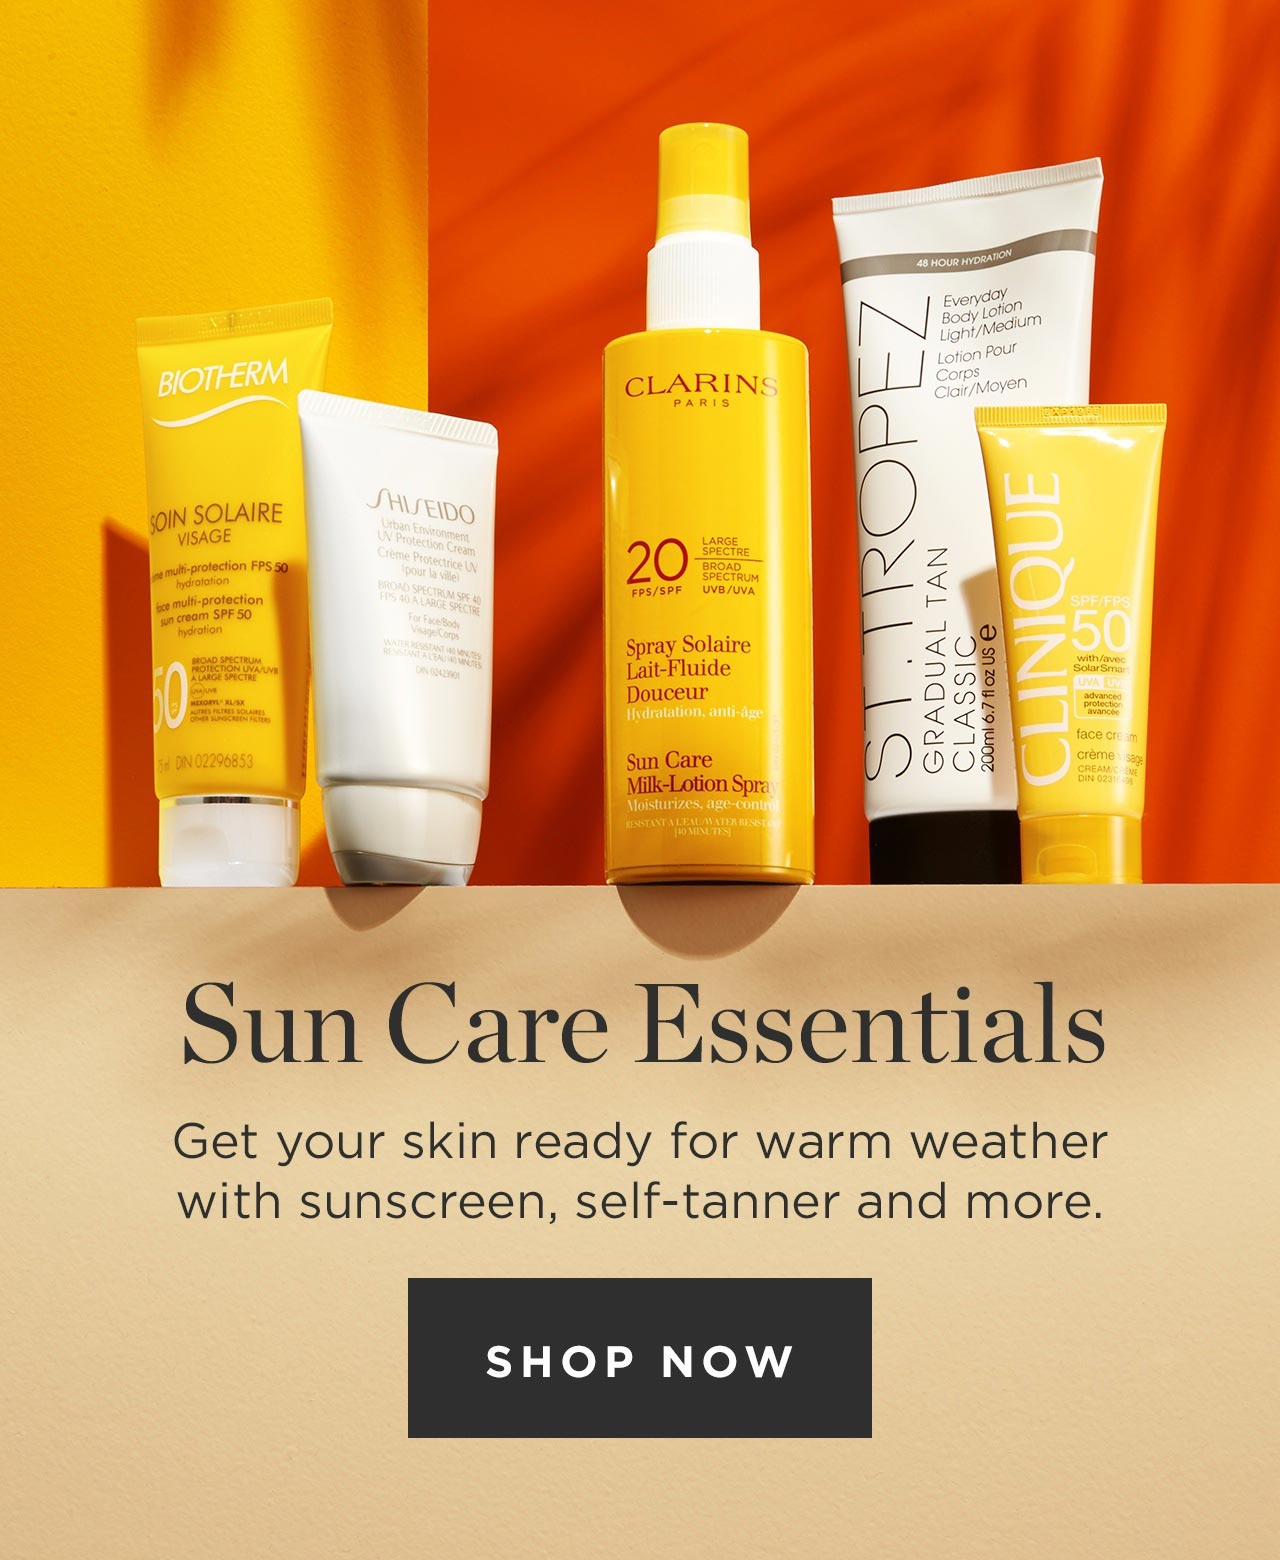 Sun Care Essentials